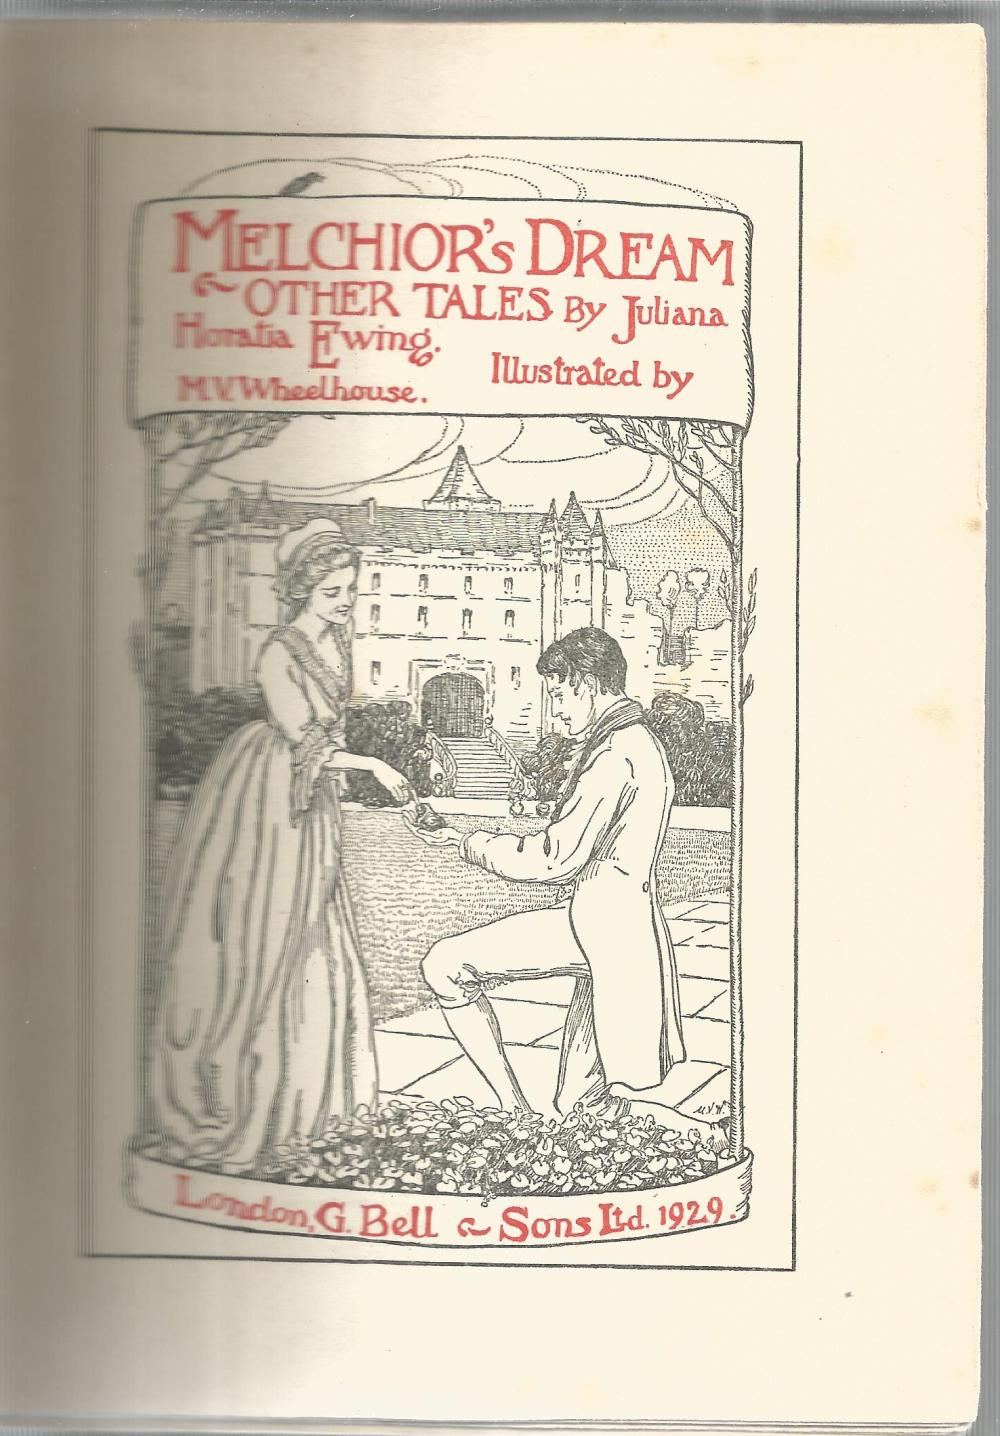 Melchior's Dream and other Tales by J H Ewing. Unsigned hardback book with no dust jacket - Image 2 of 2